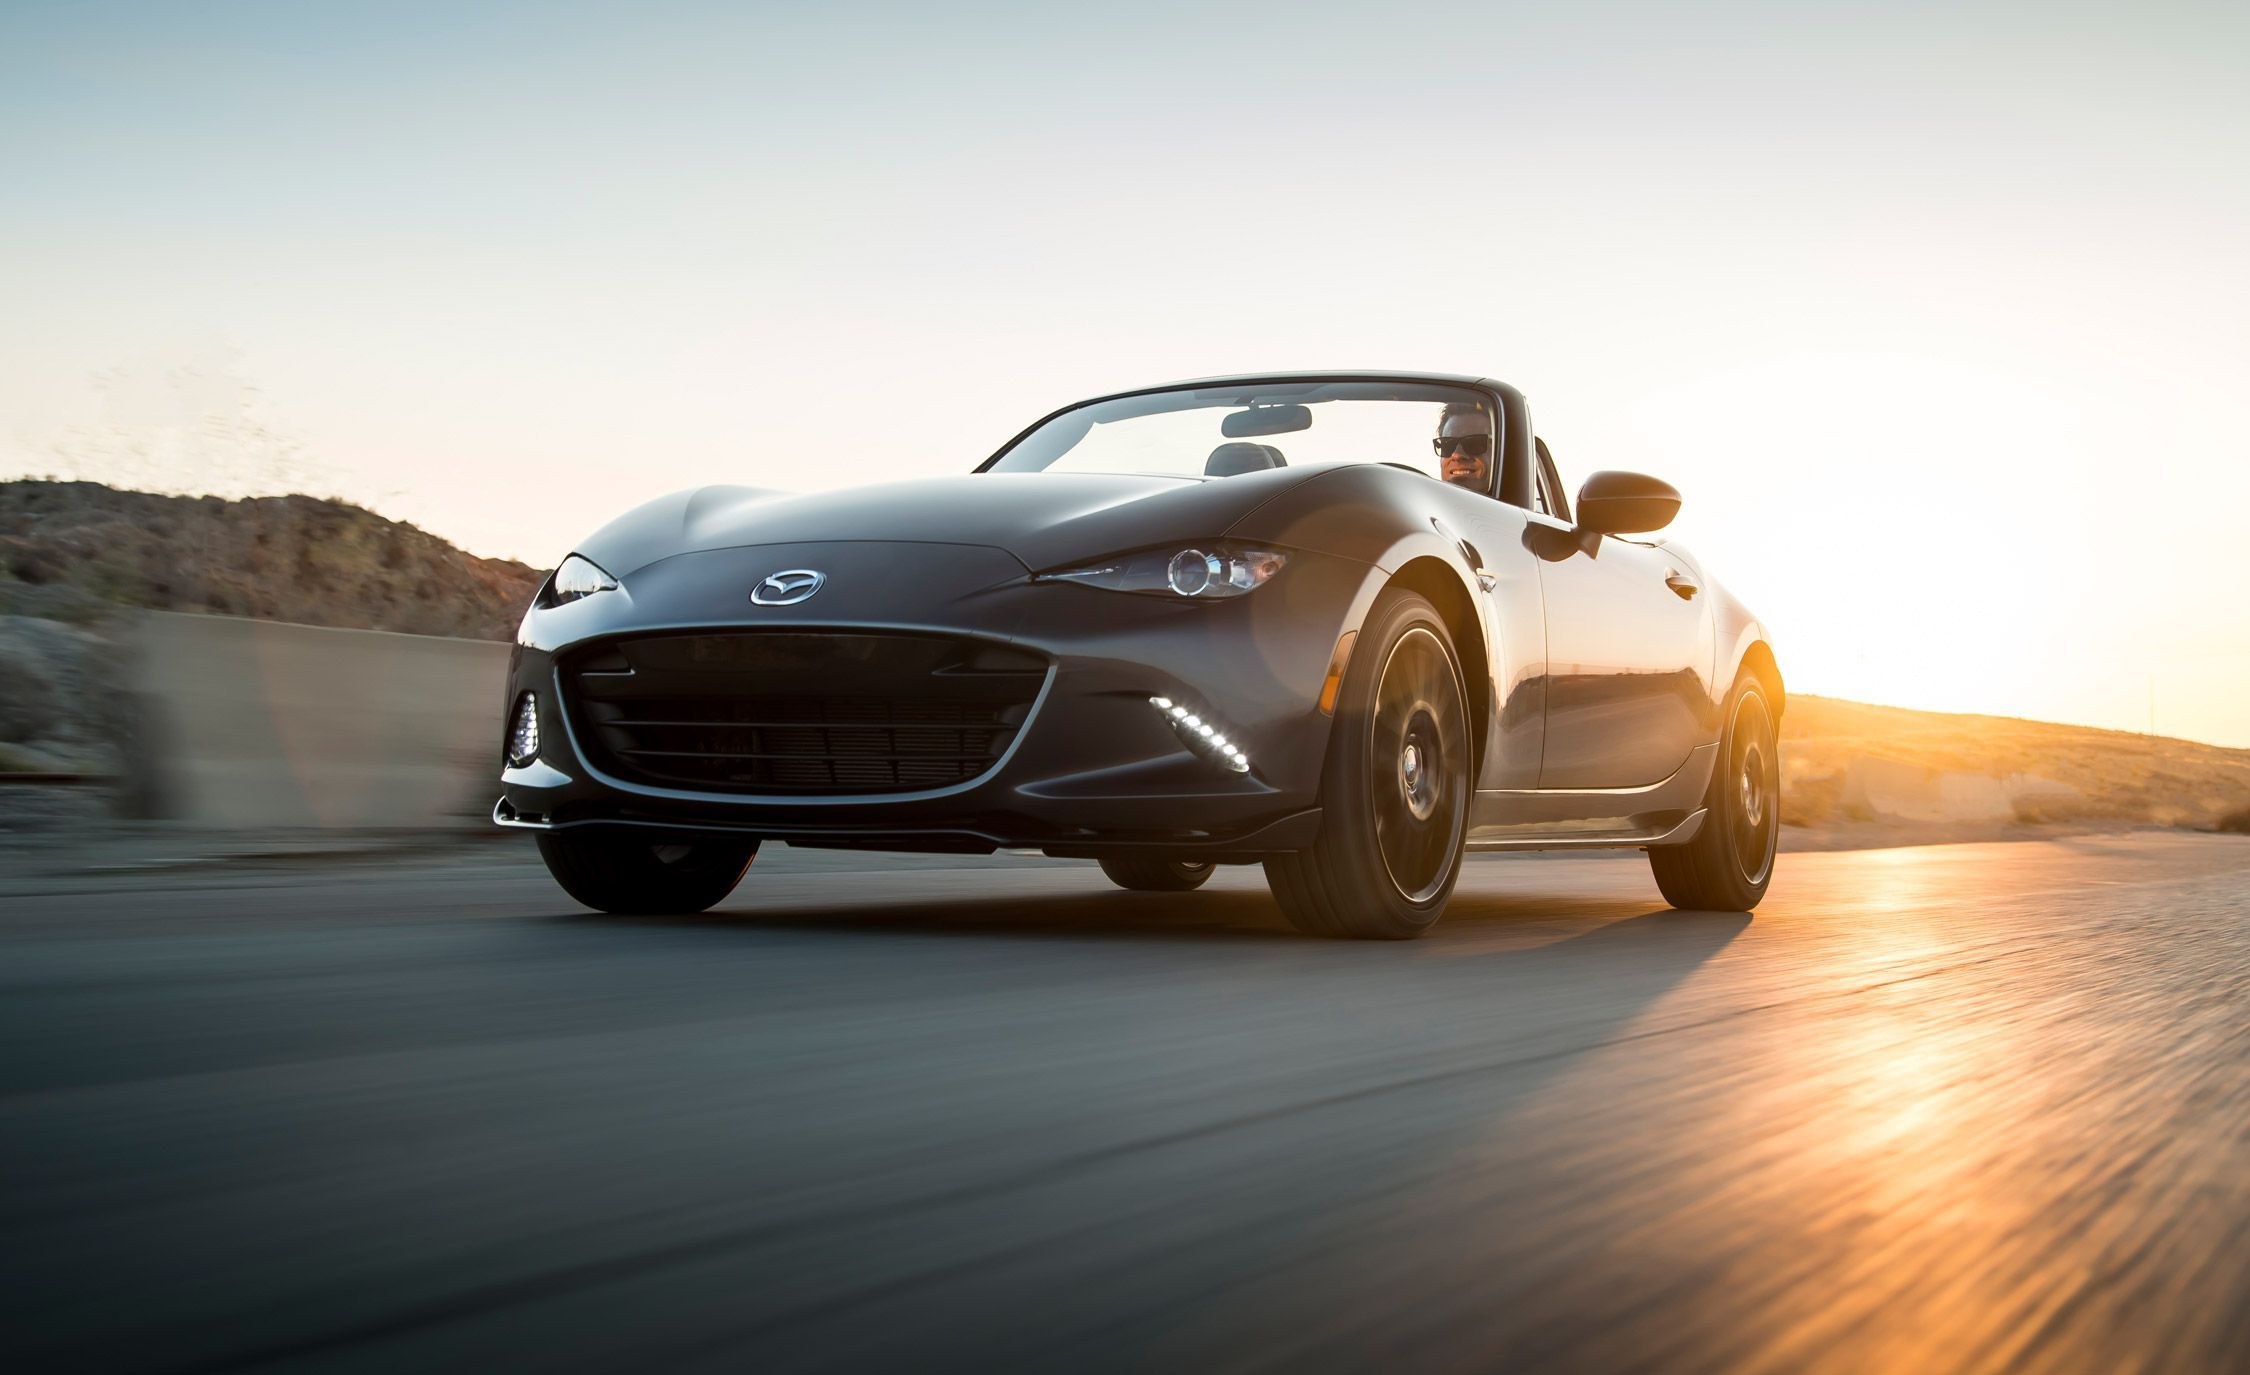 2021 Mazda MX5 Miata Review, Pricing, and Specs Mazda